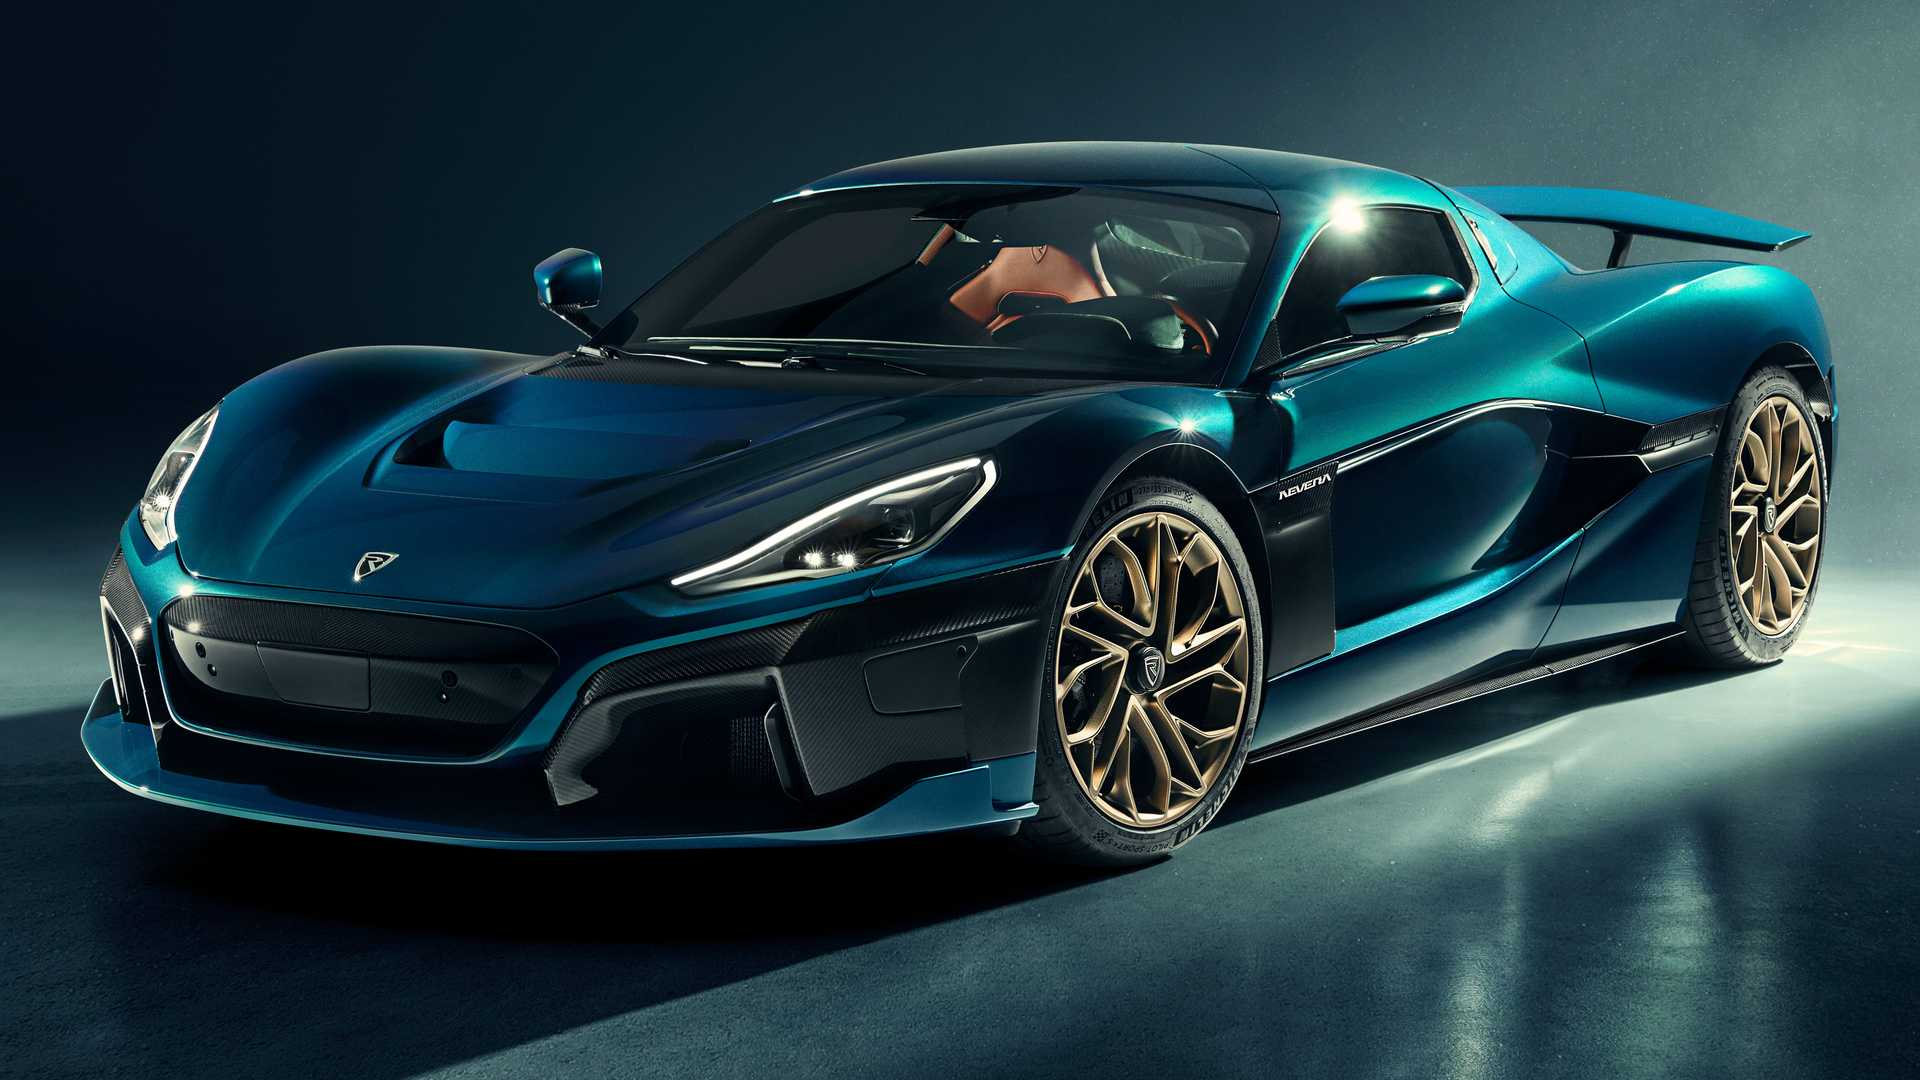 After a few years of teasing us with its C_Two hypercar prototype, Rimac has finally revealed the production-ready car, which will be known as the Nevera.